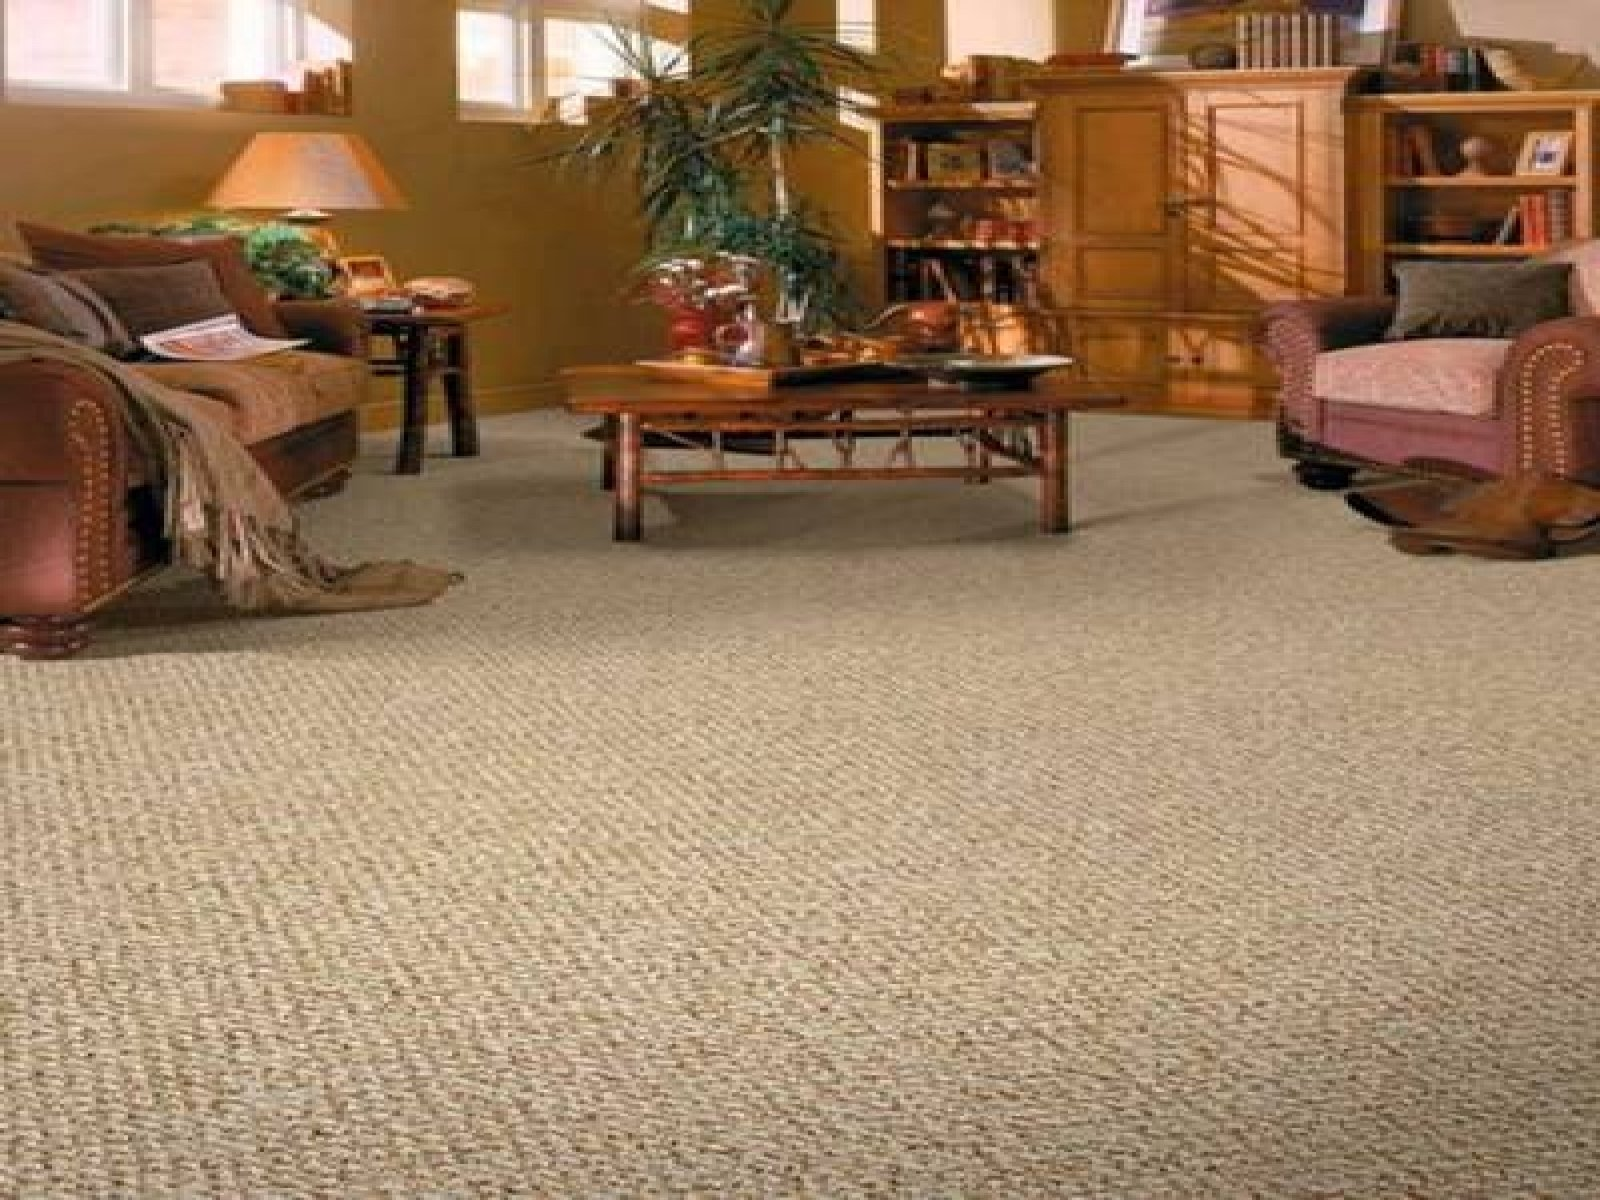 10 Fashionable Wall To Wall Carpet Ideas ideas living room carpet with furniture appealing photo rugs shag 2020